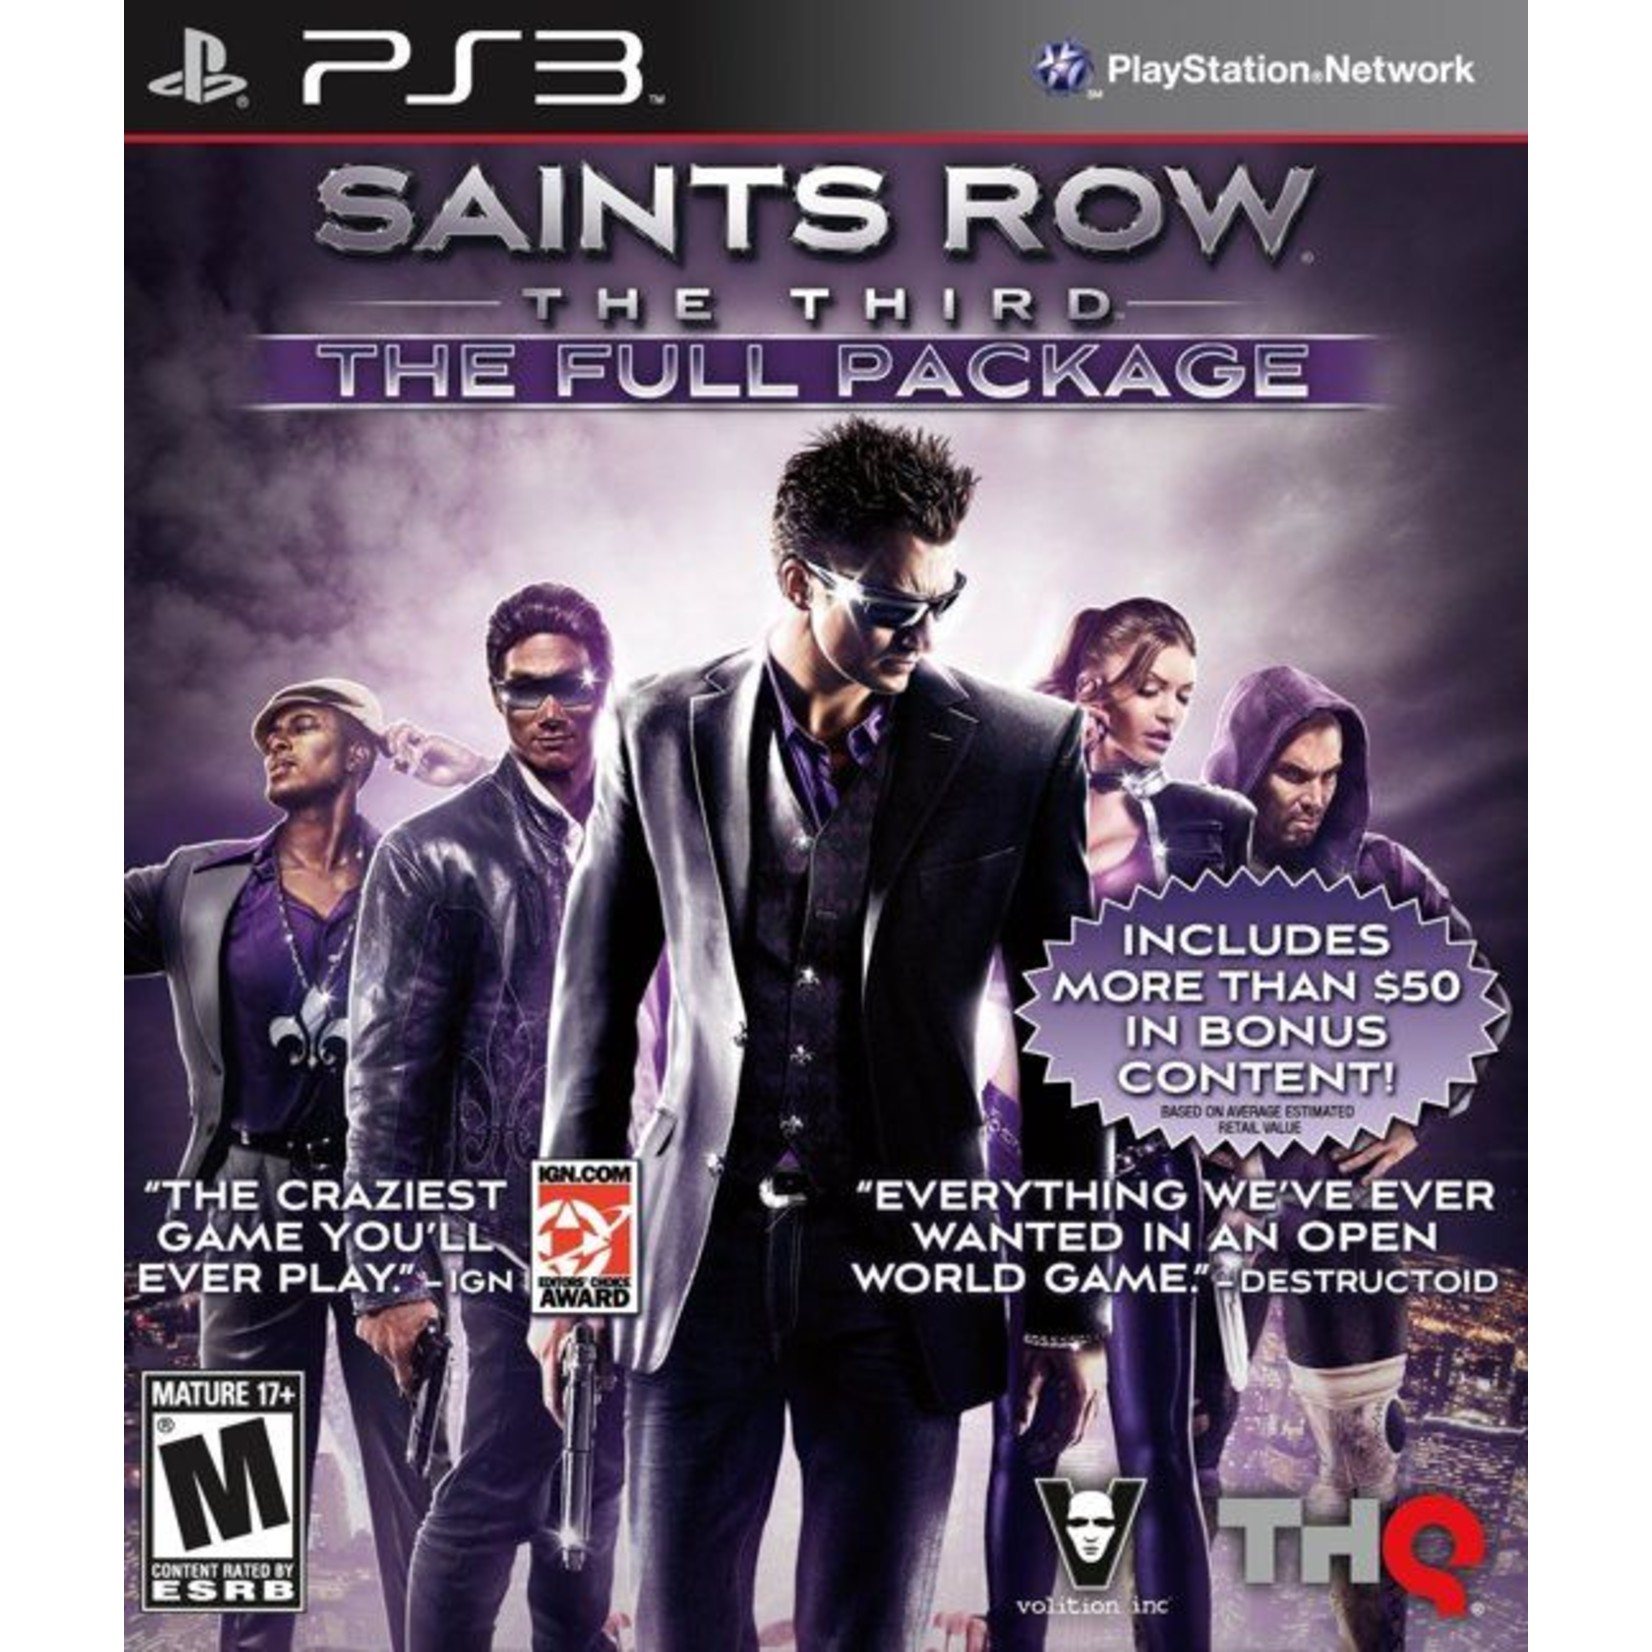 Saints Row The Third - Full Package